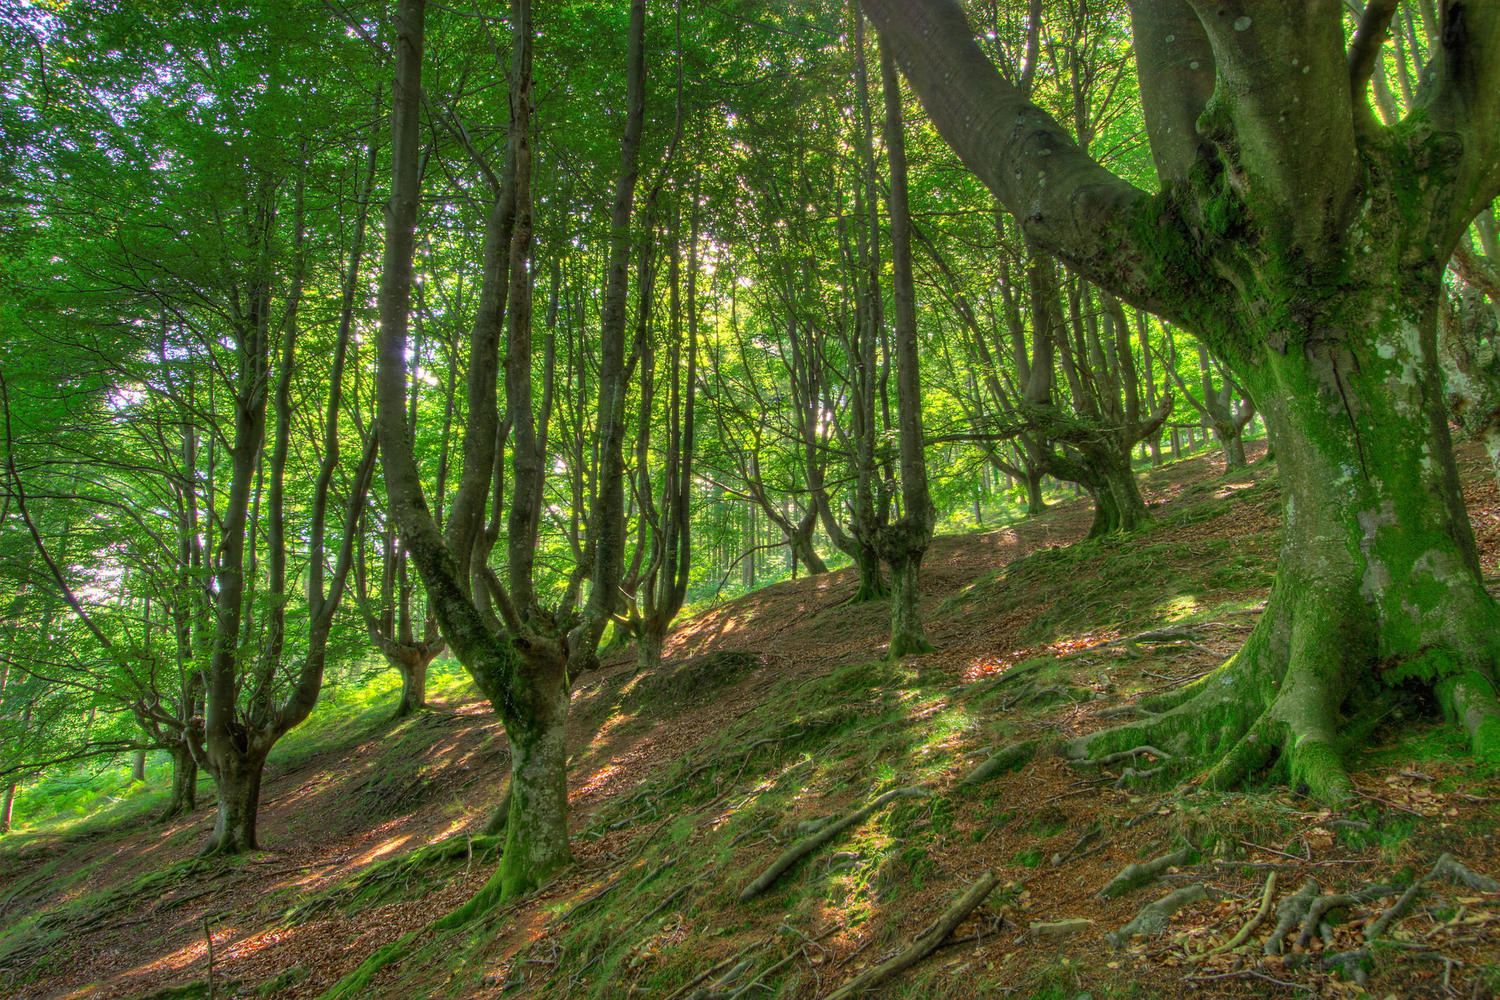 The forests of Monte Gorbeia in Vizcaya province of Spain